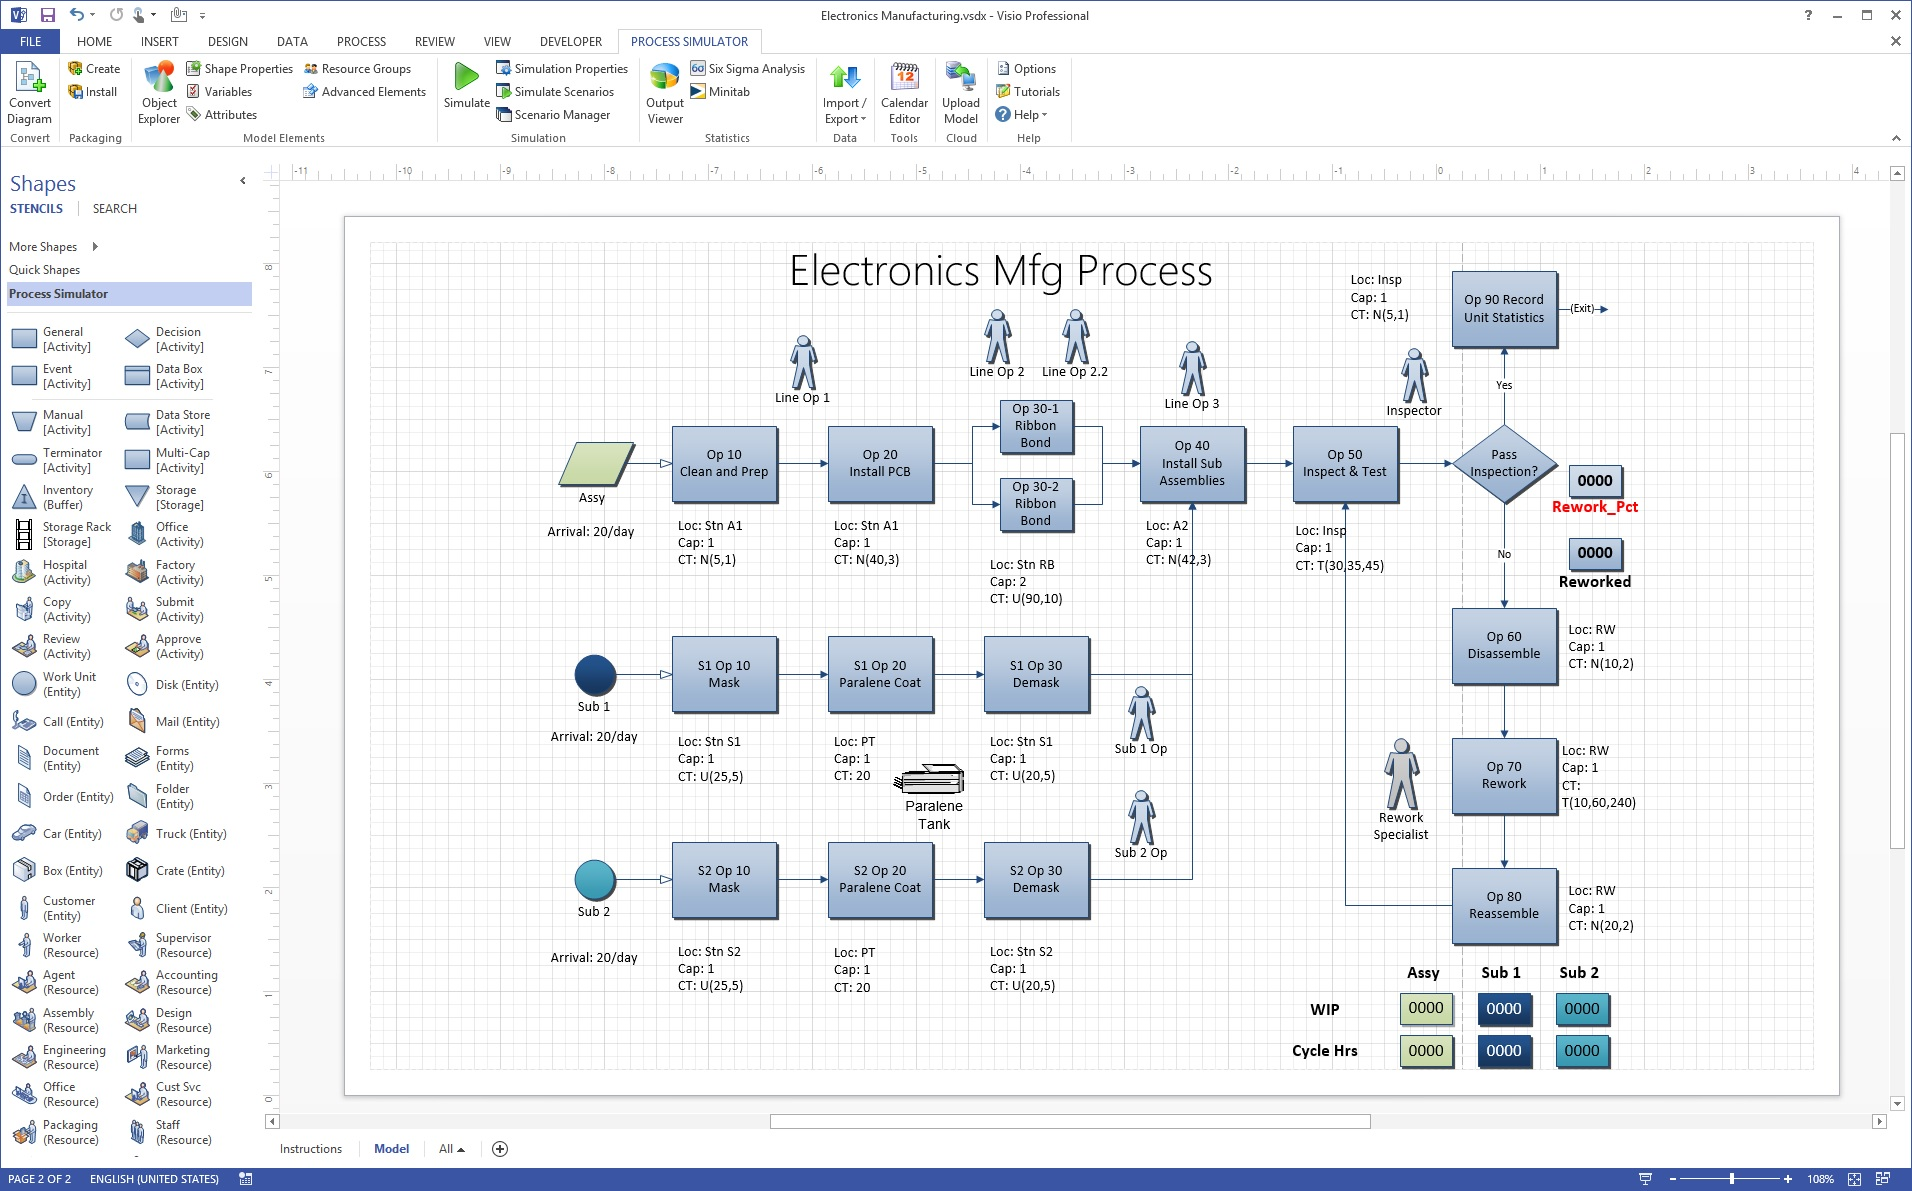 ms office word and excel such as text and color choices and allow data feeds directly from ms excel and access as with other diagram software visio - Visio 2007 Standard